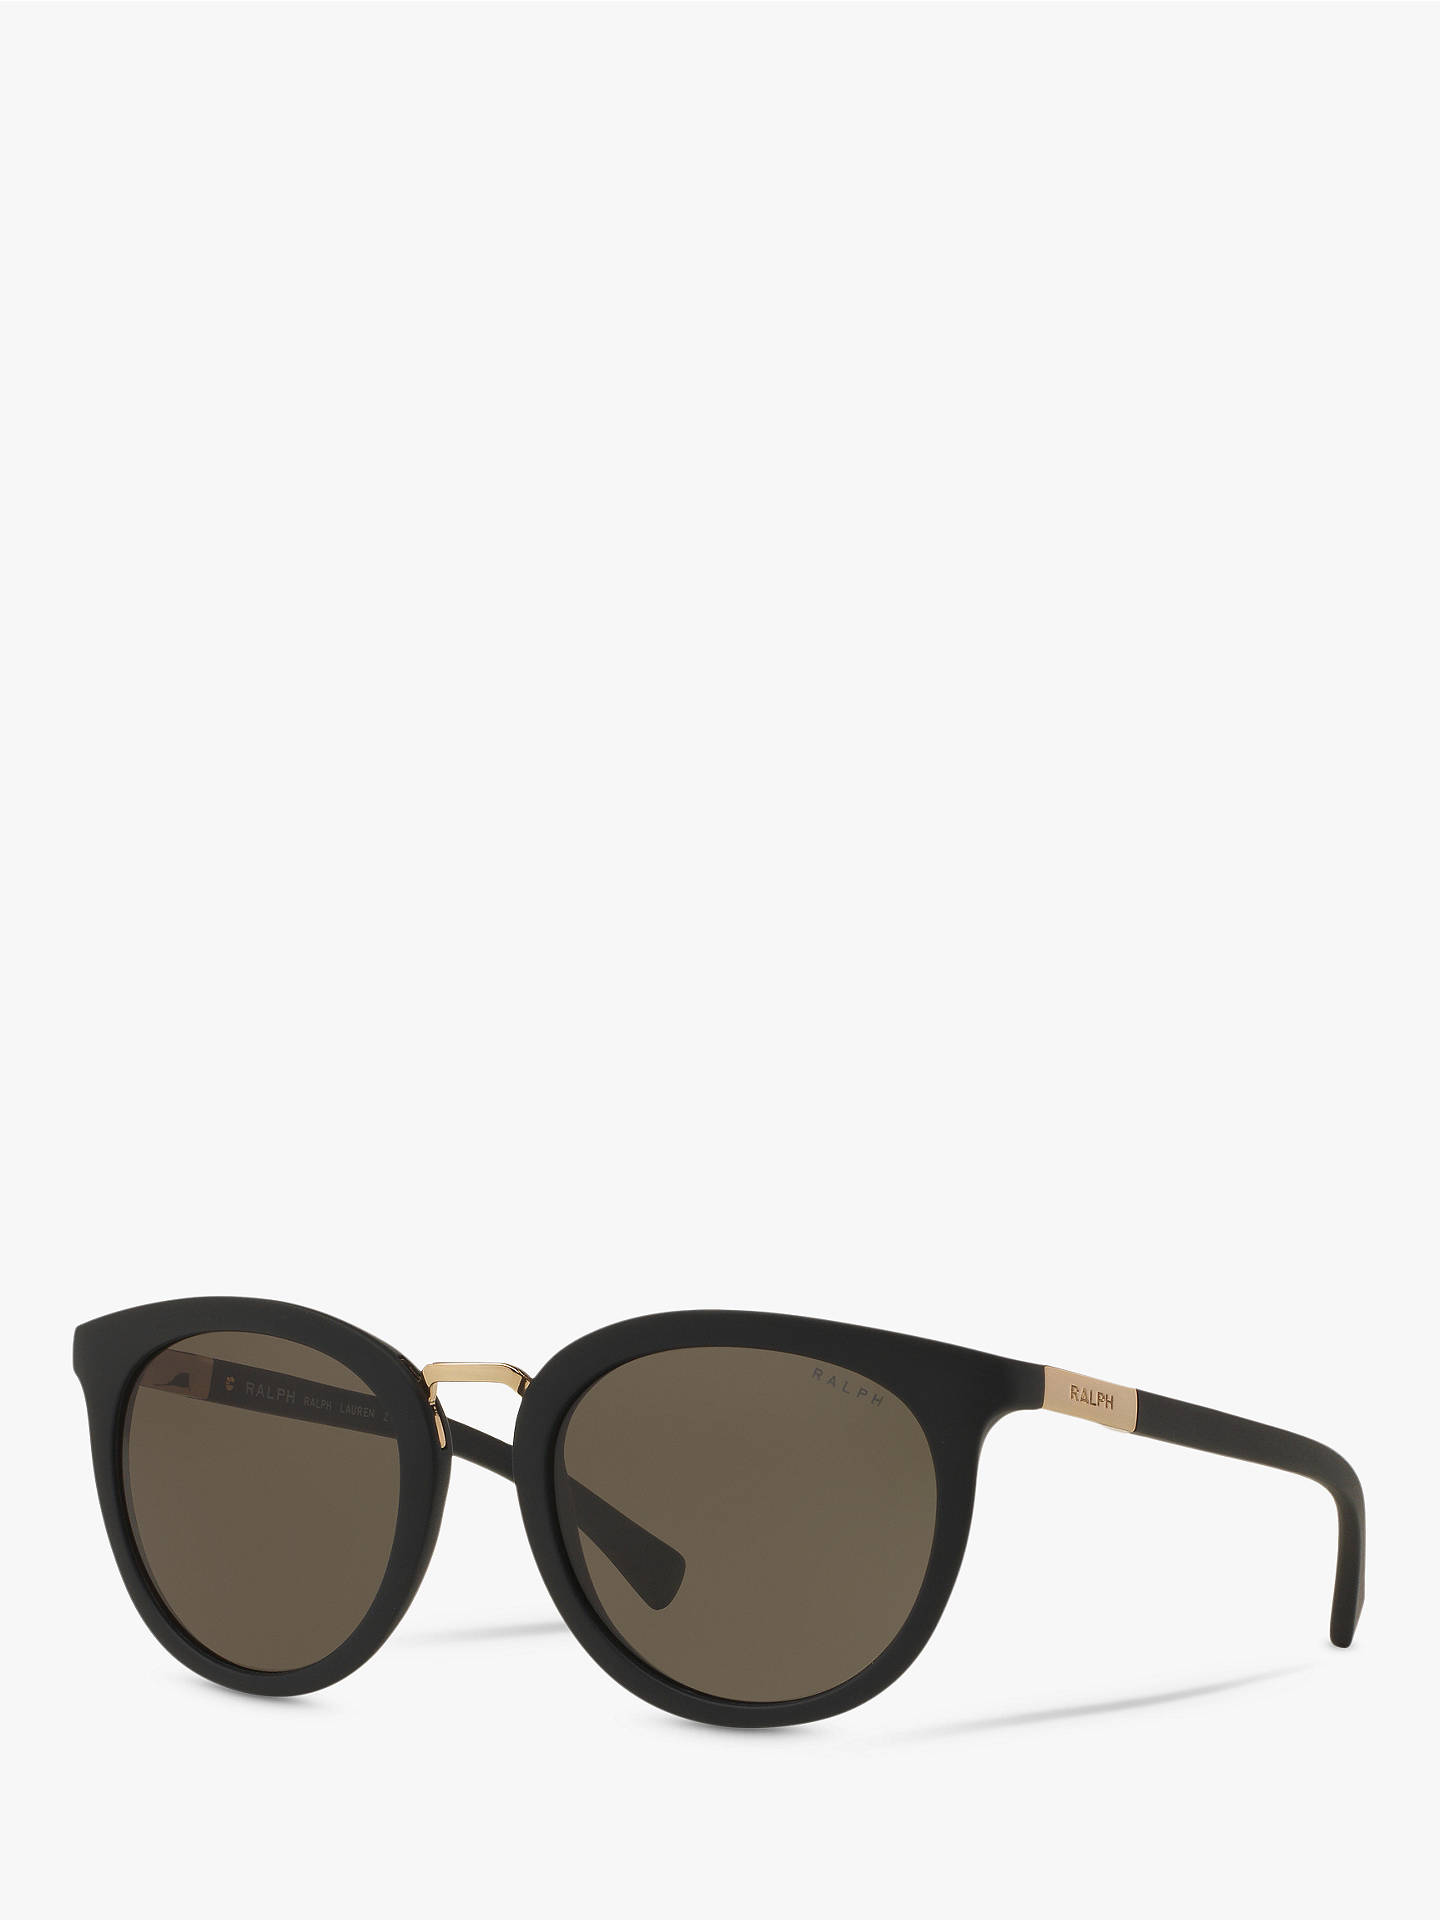 873da80f923 Ralph RA5207 Women s Round Sunglasses at John Lewis   Partners